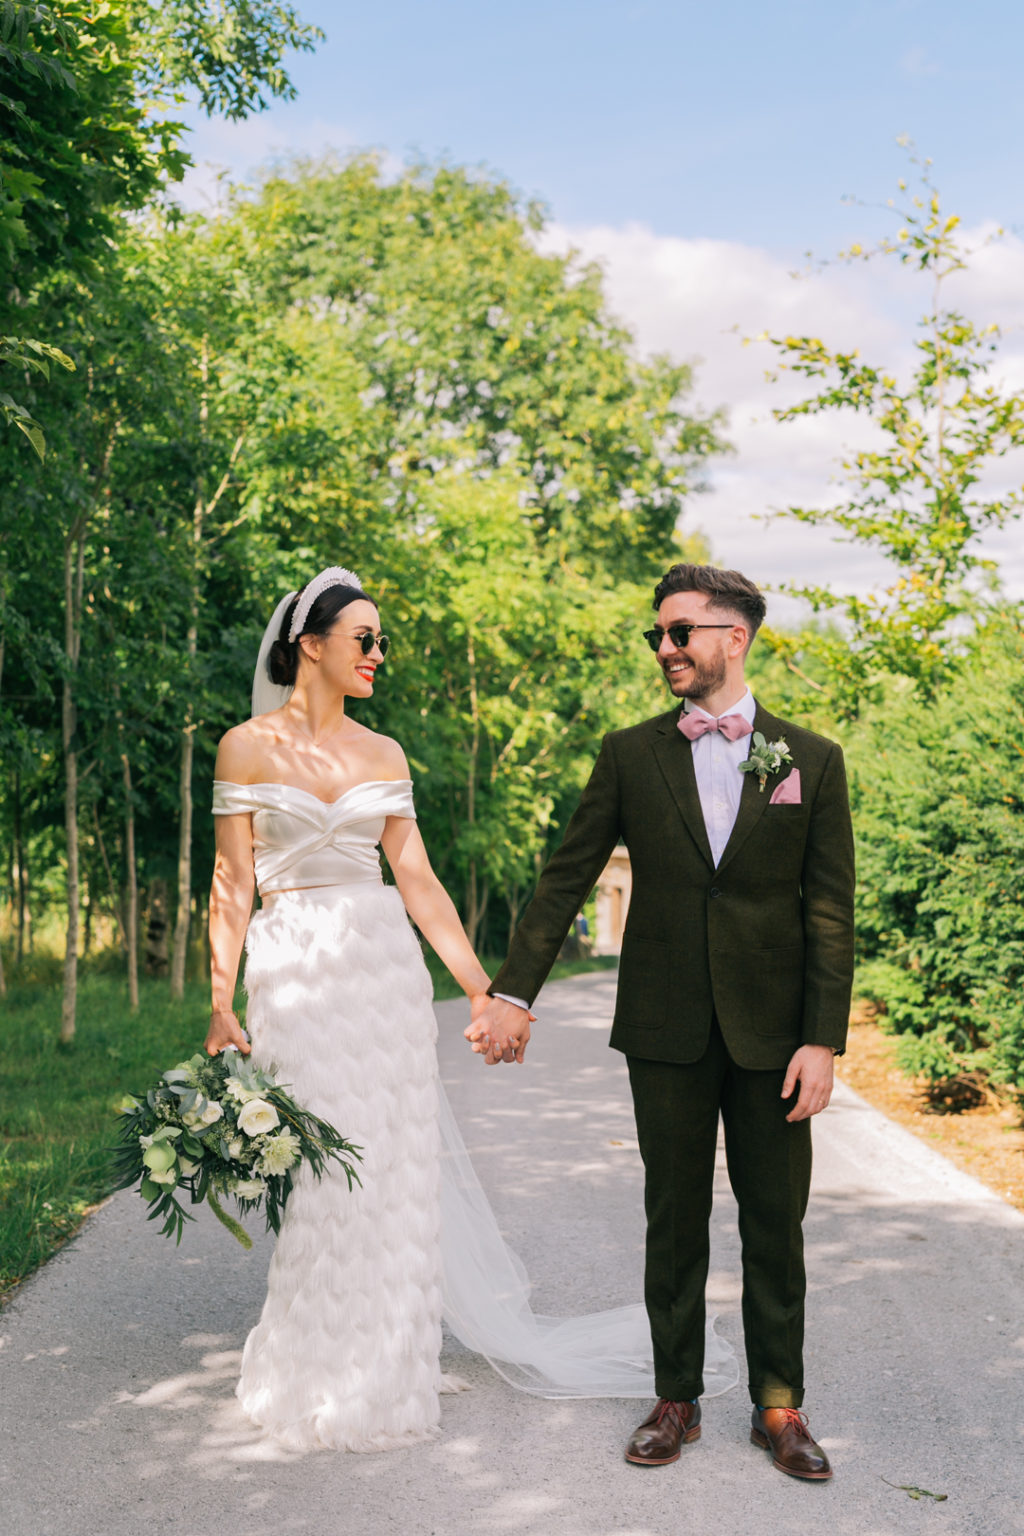 This stylish wedding with laid back vibes, quriky touches and lots of LOLs impresses